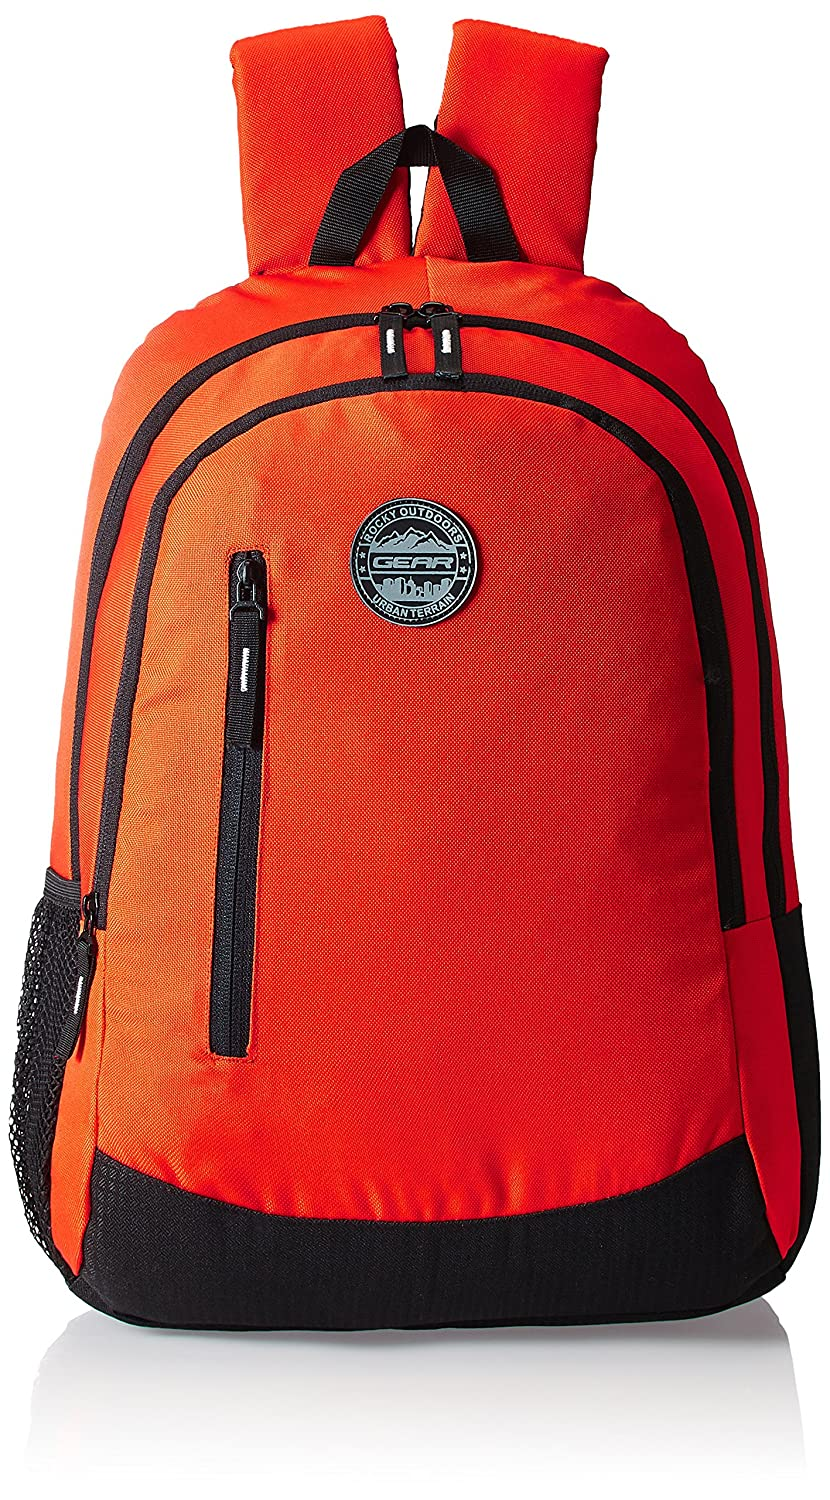 Amazon: GEAR Orange and Black Casual Eco Backpack 4 @ Rs.494/-